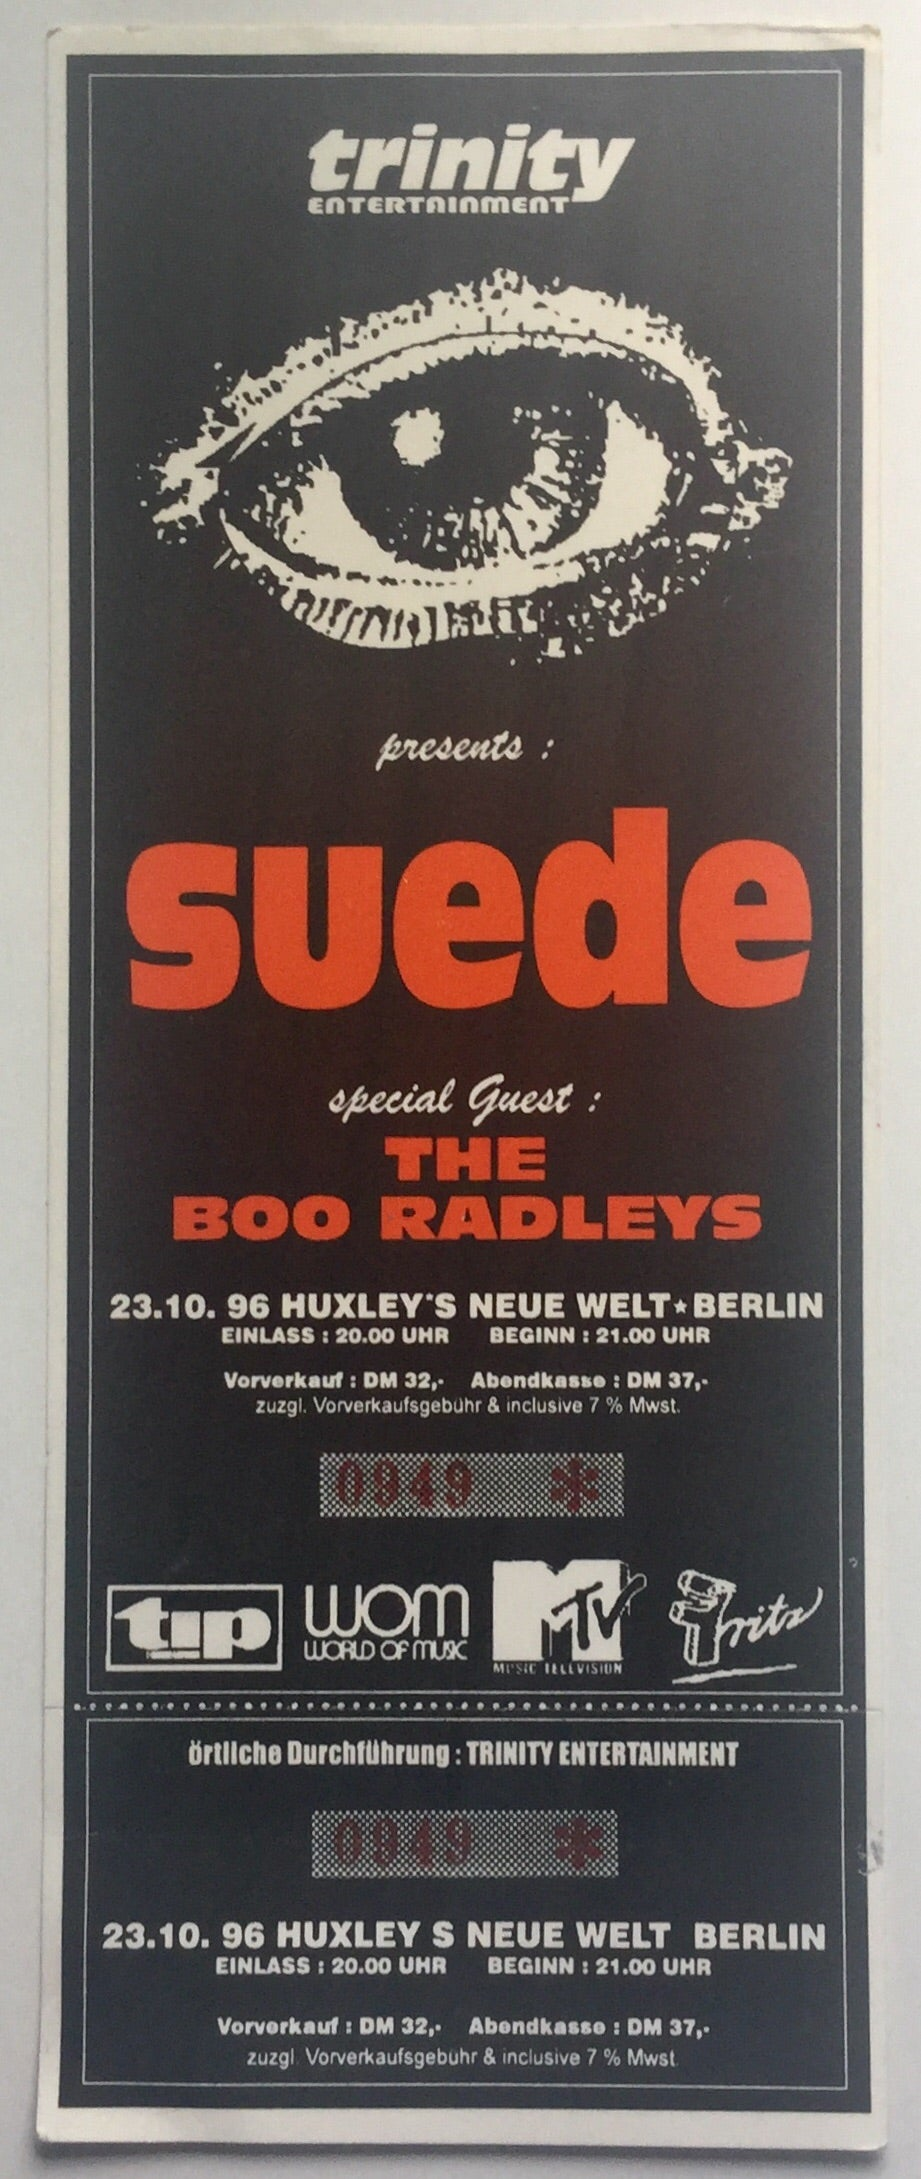 Suede Original Unused Concert Ticket Huxley's Neue Welt Berlin 23rd Oct 1996